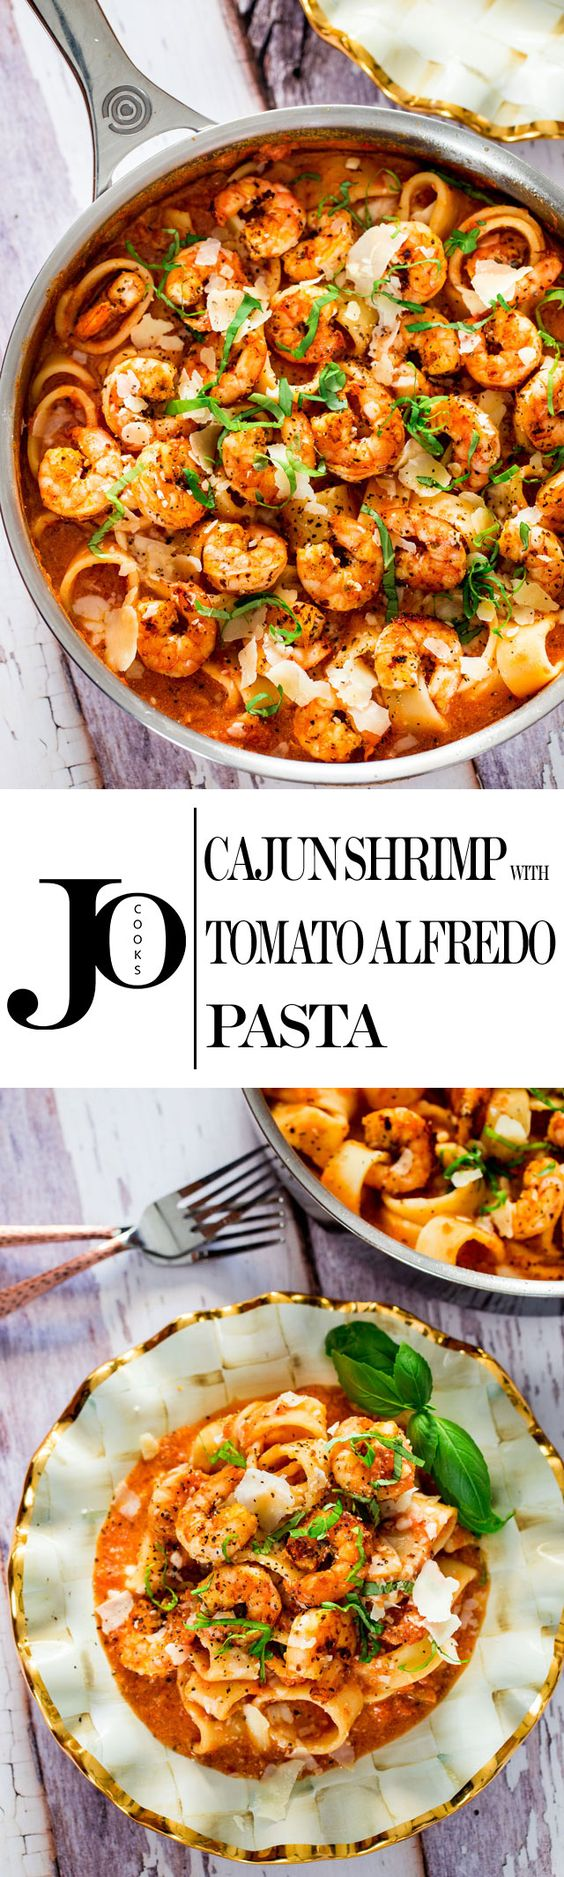 Cajun Shrimp with Tomato Alfredo Pasta - a one pot dish of a simple and delicious tomato Alfredo sauce tossed with your favorite pasta and pan seared cajun shrimp.